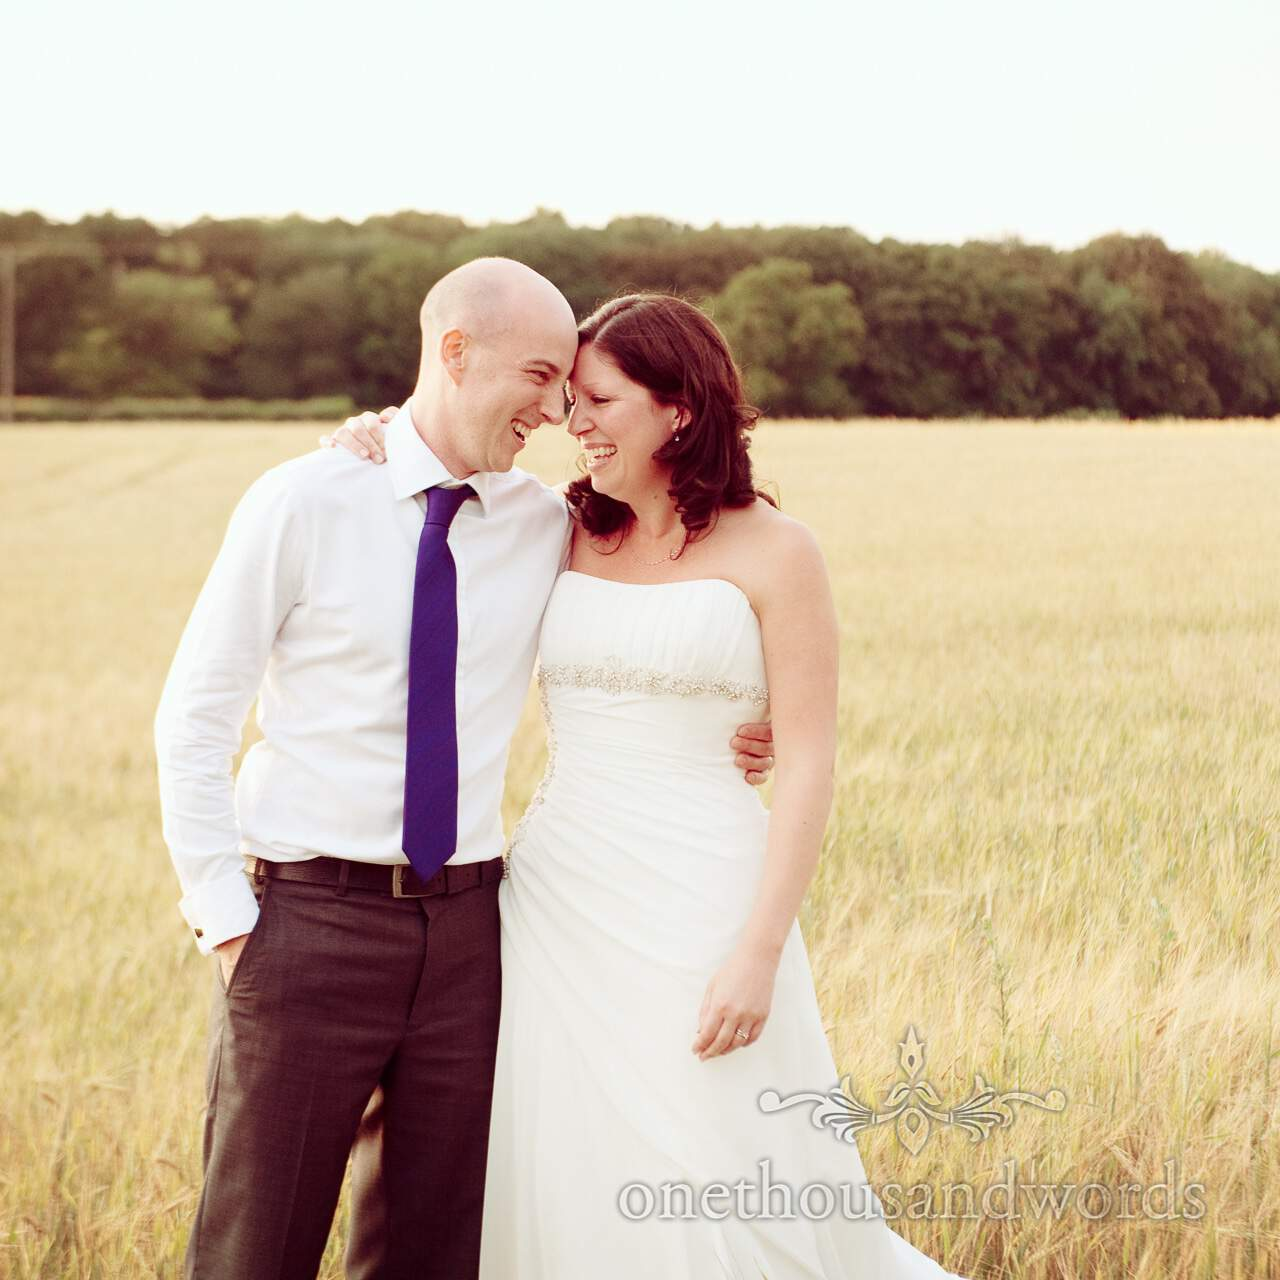 Bride and groom portrait in field